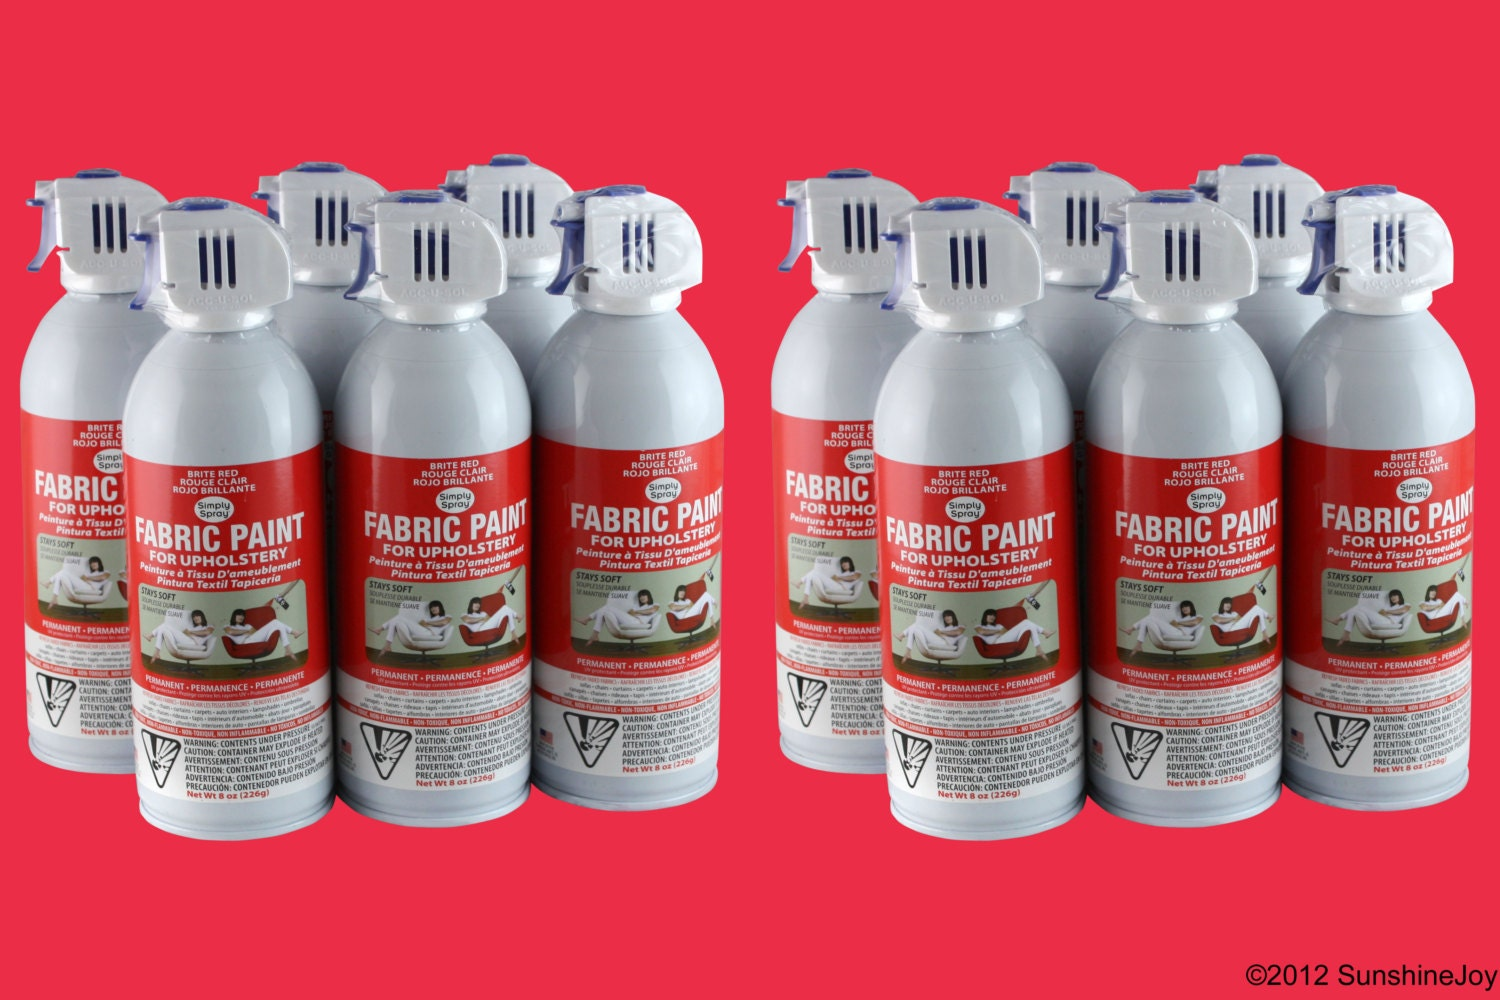 Simply Spray Upholstery Fabric Spray Paint - Dries Soft, Permanent - RED -  12 PACK